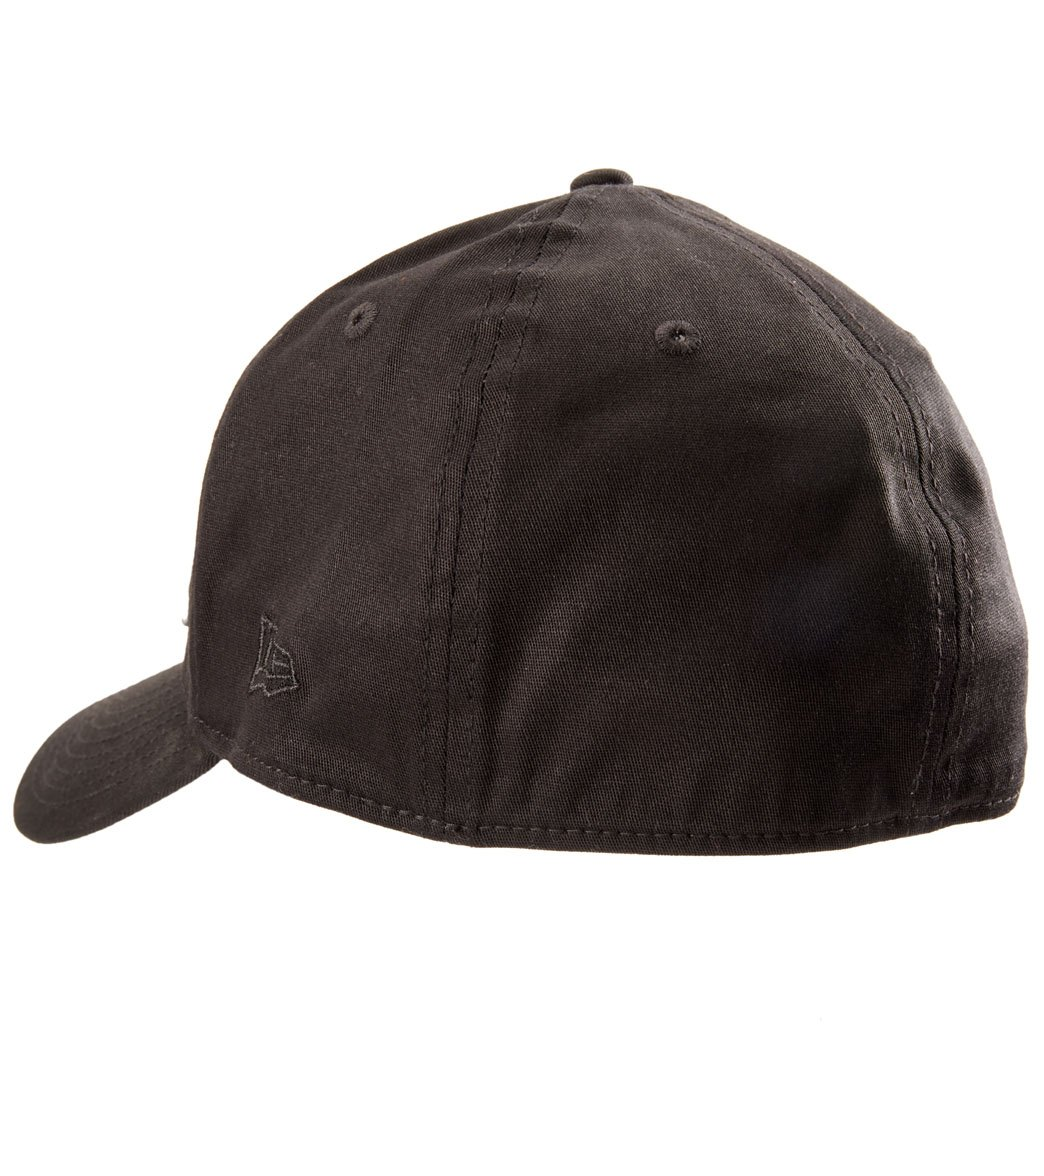 Oakley Men s Tinfoil Cap Hat at SwimOutlet.com fcca128203f5